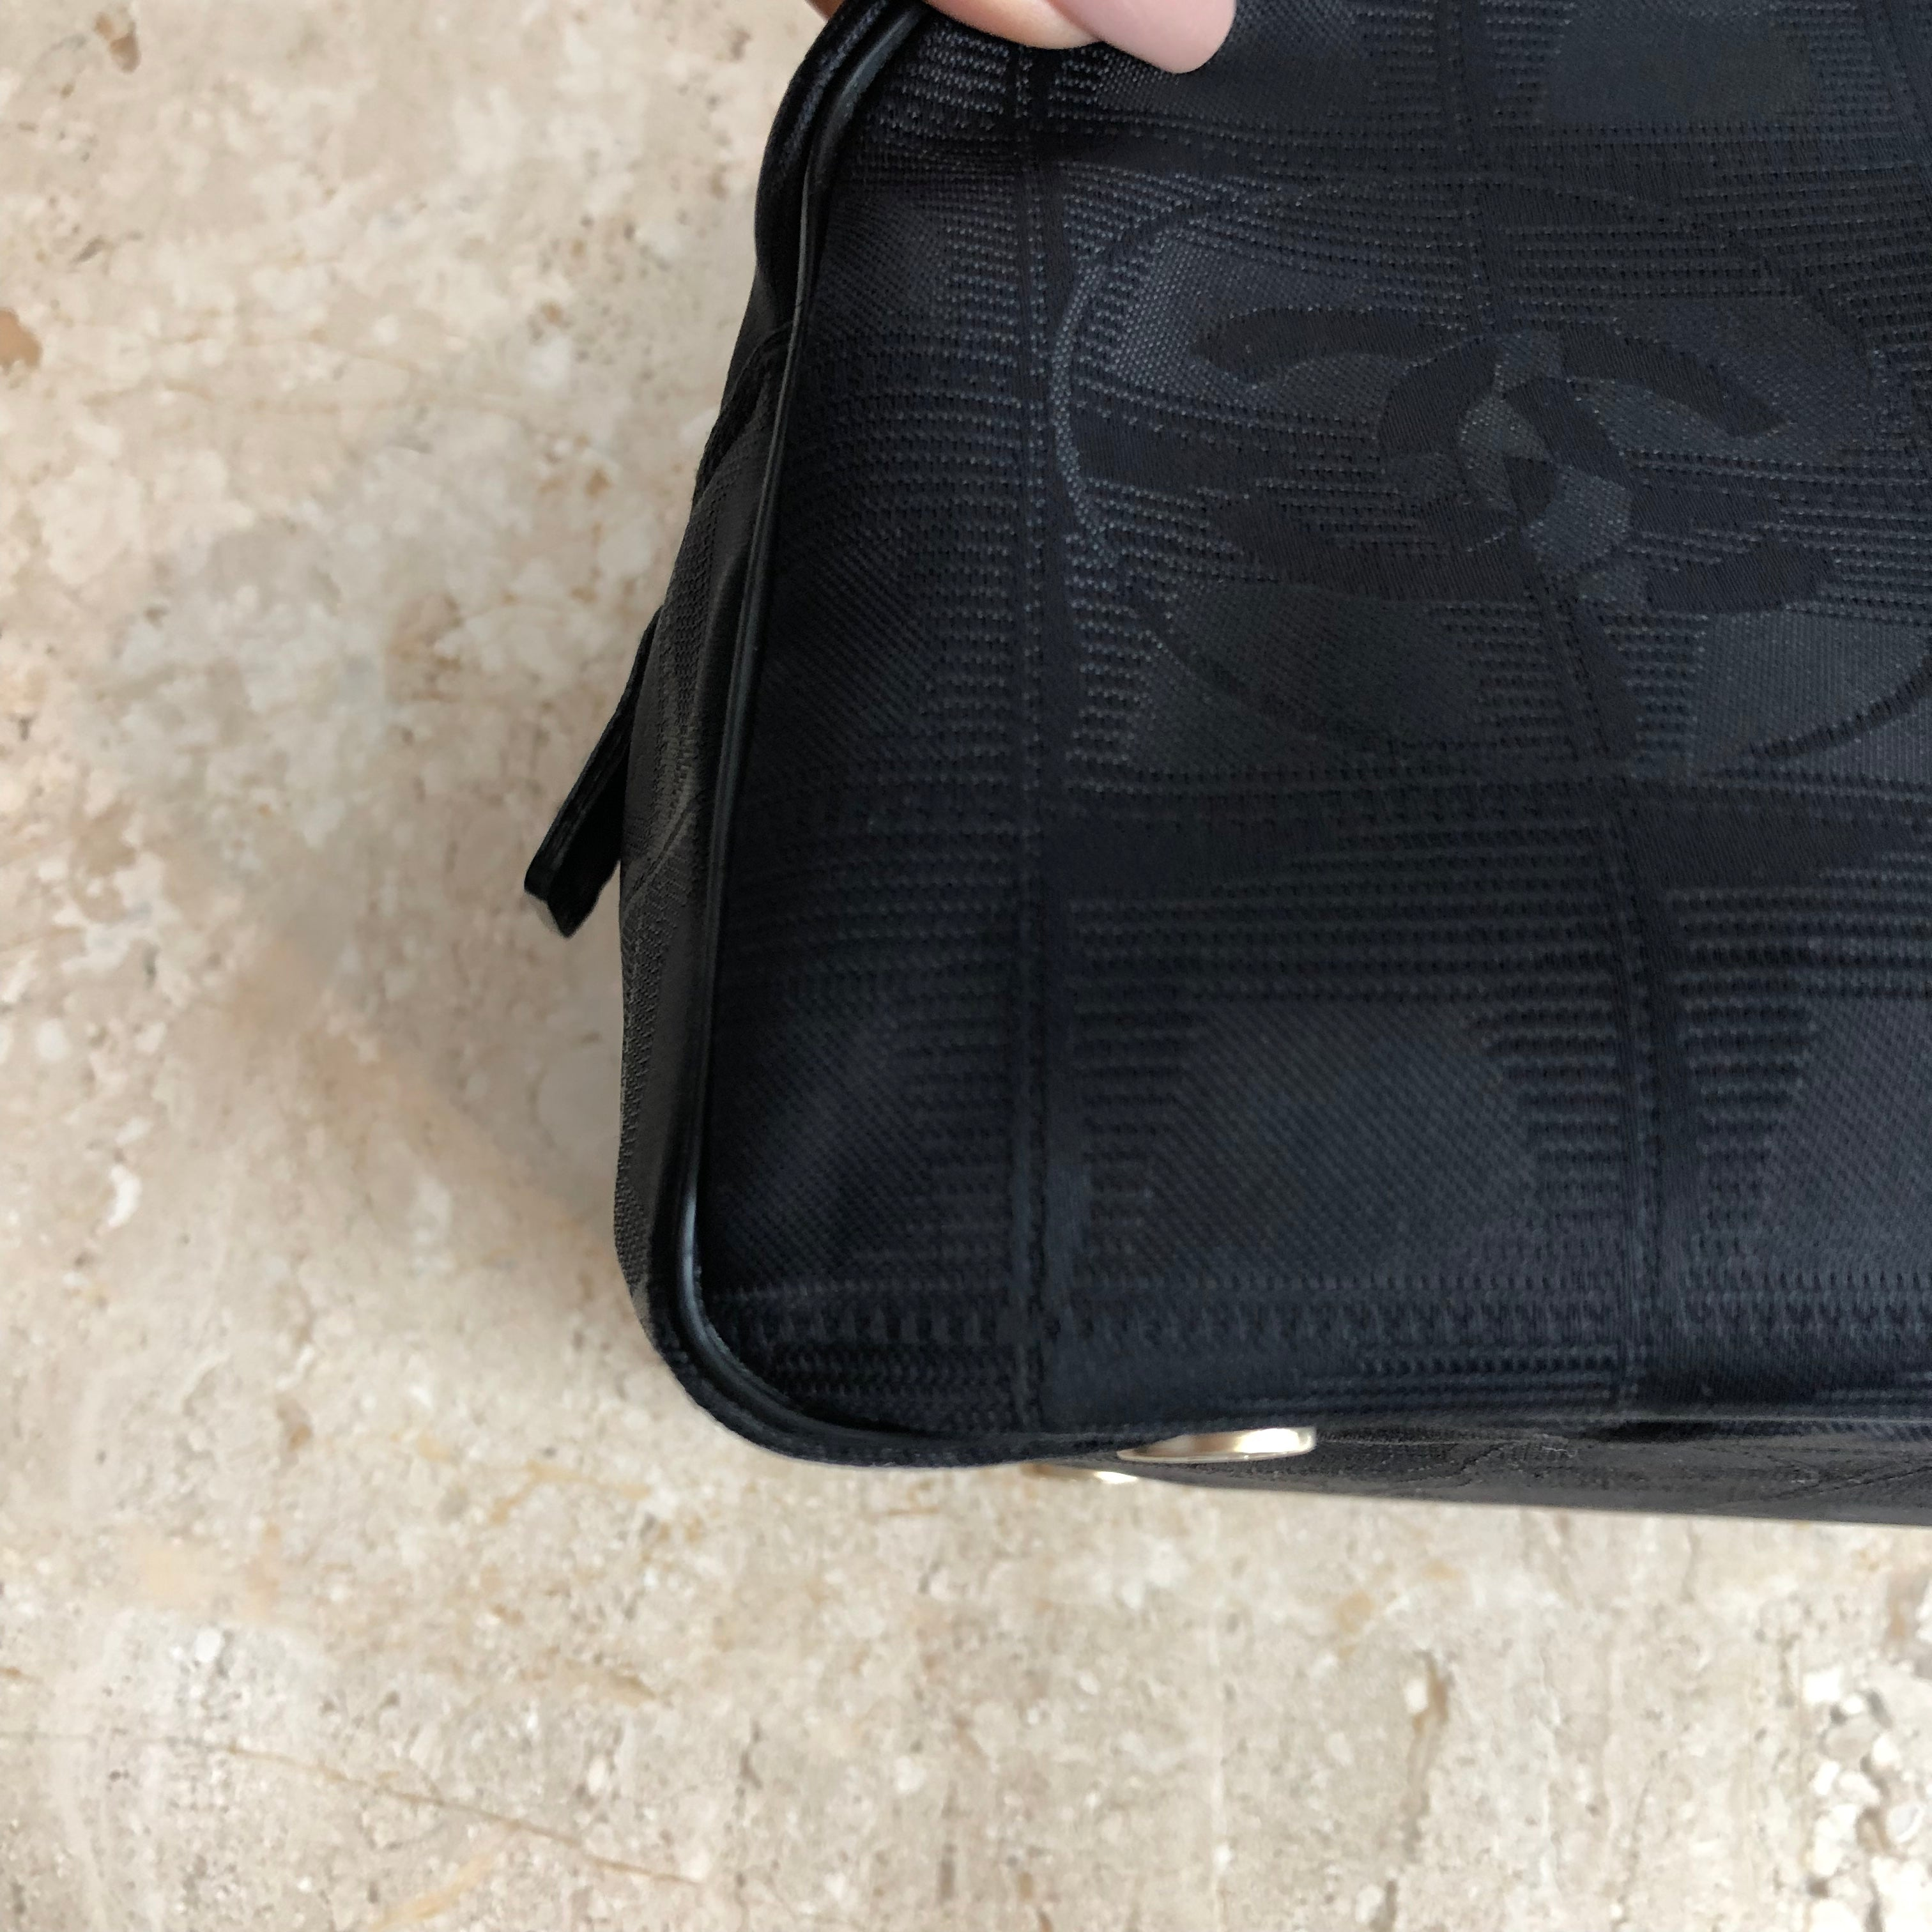 Thirds and last Payment Authentic CHANEL Logo Handbag